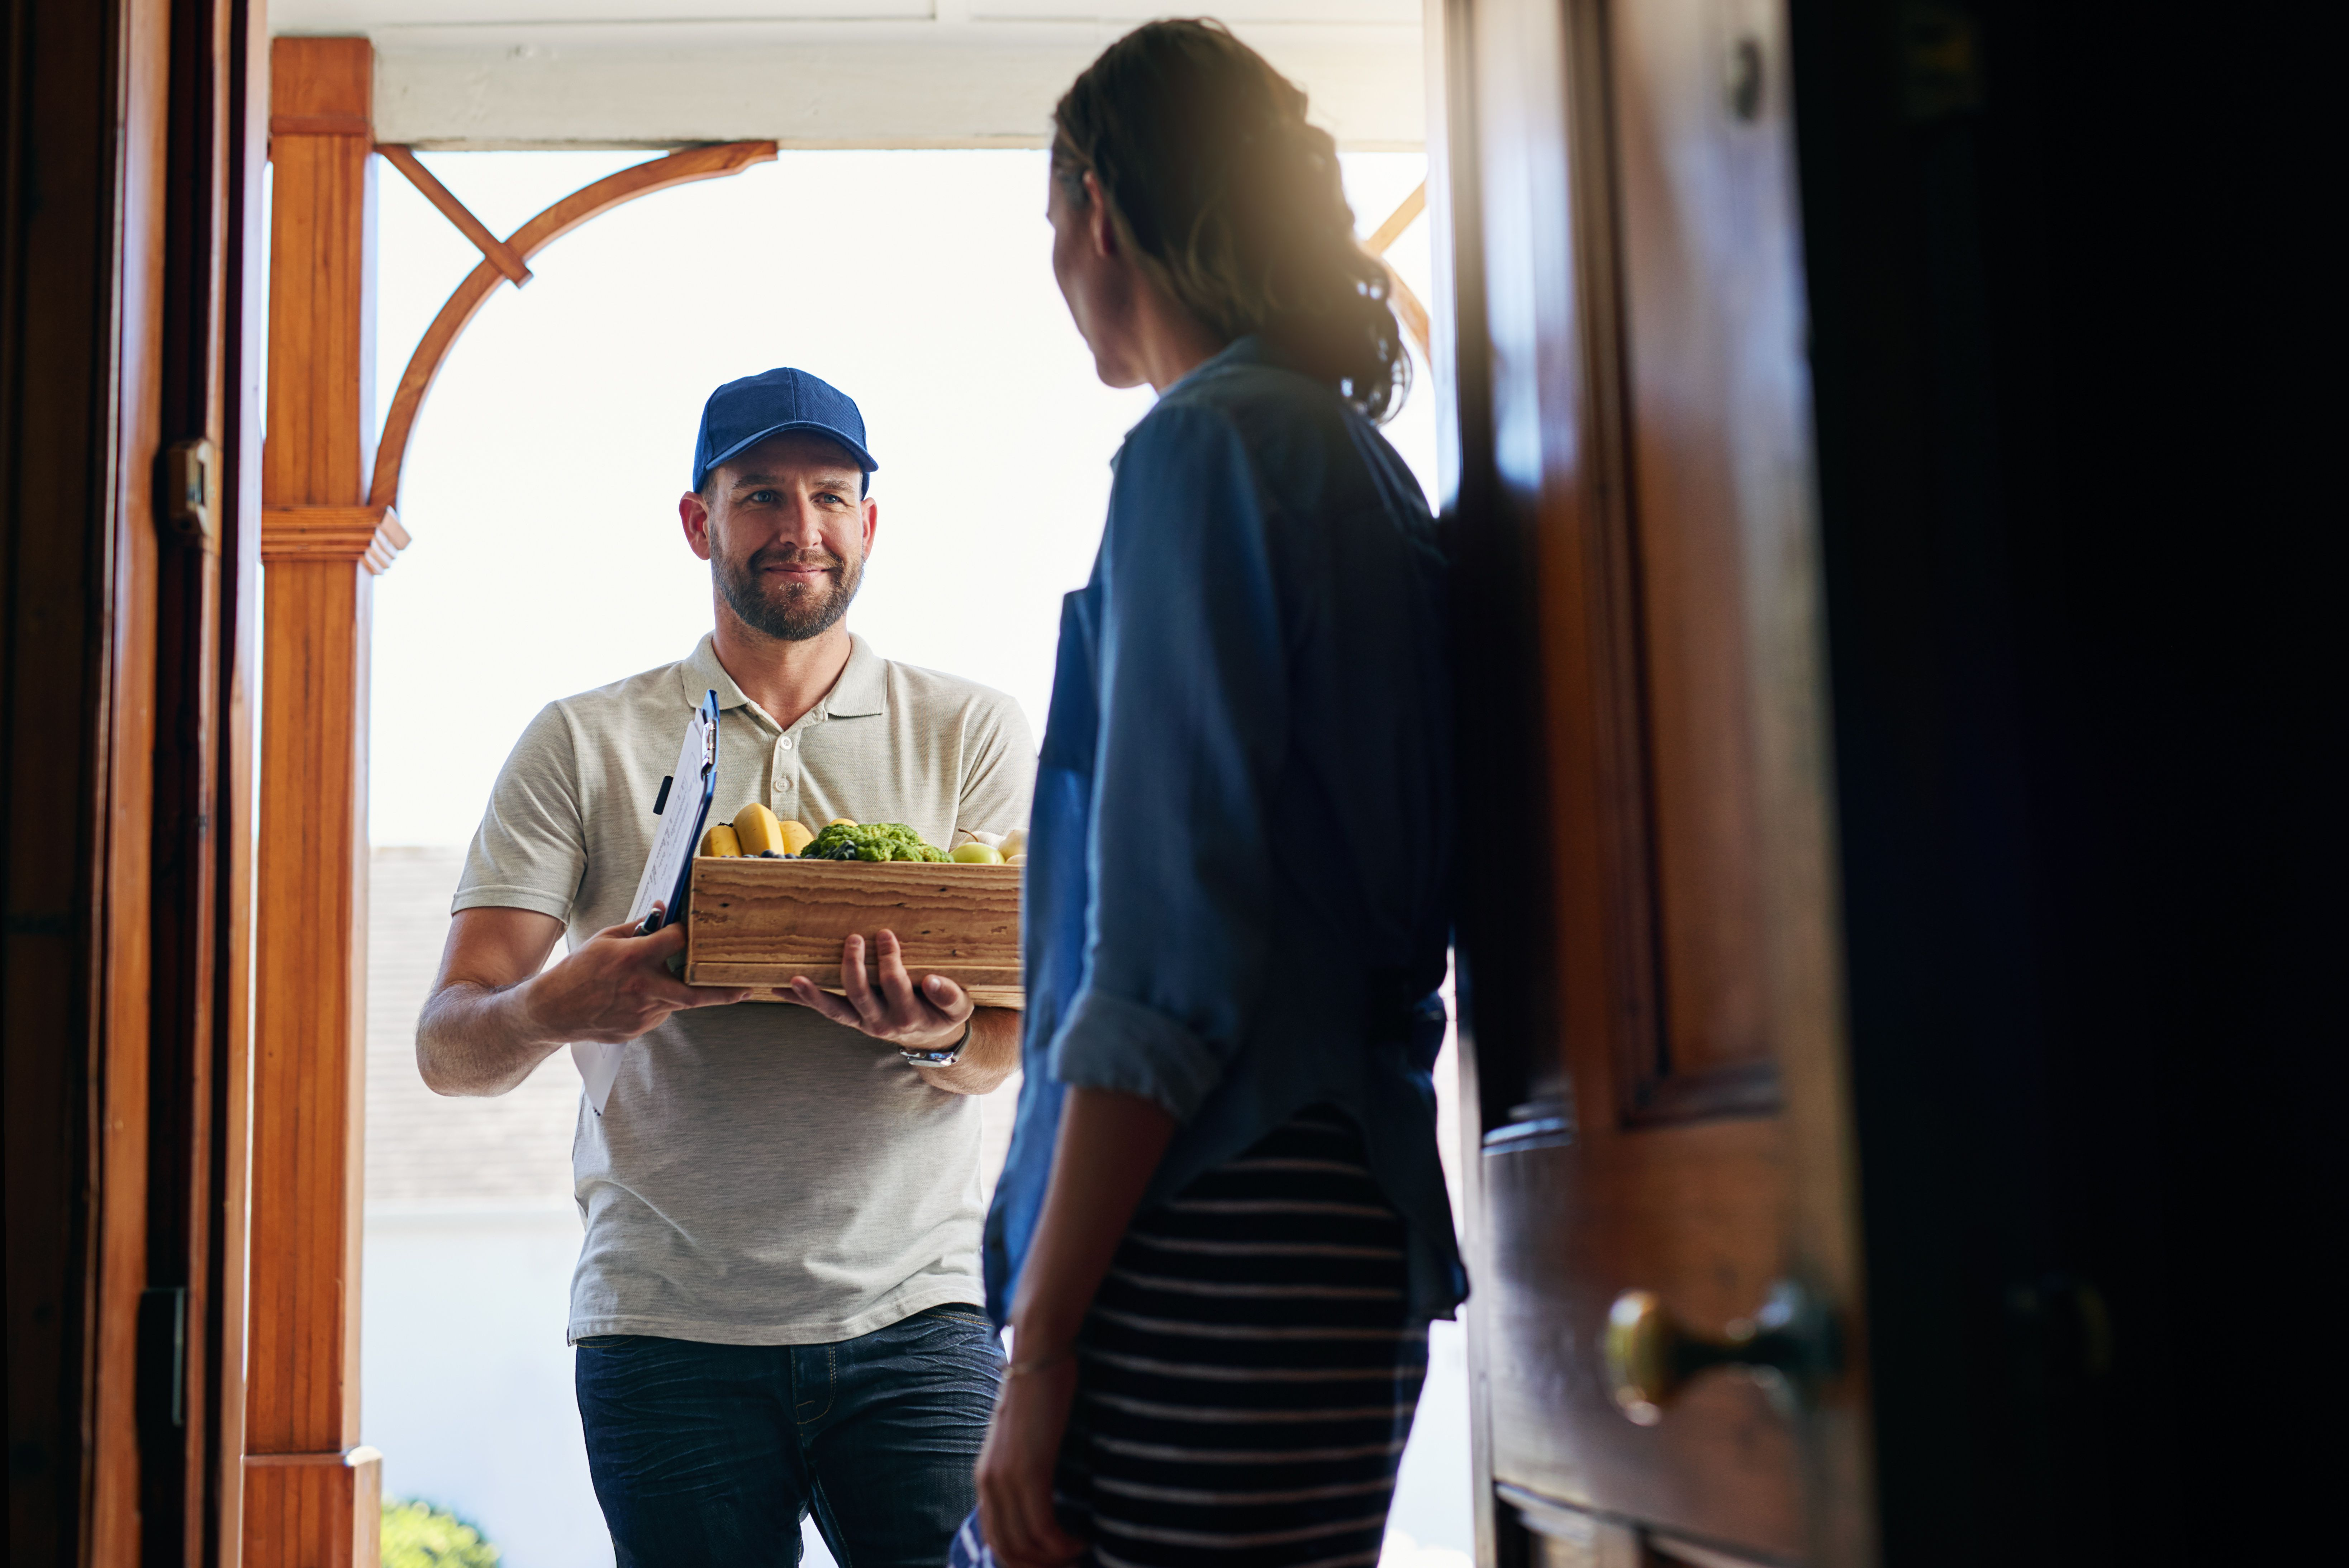 Man delivering groceries to a woman at home